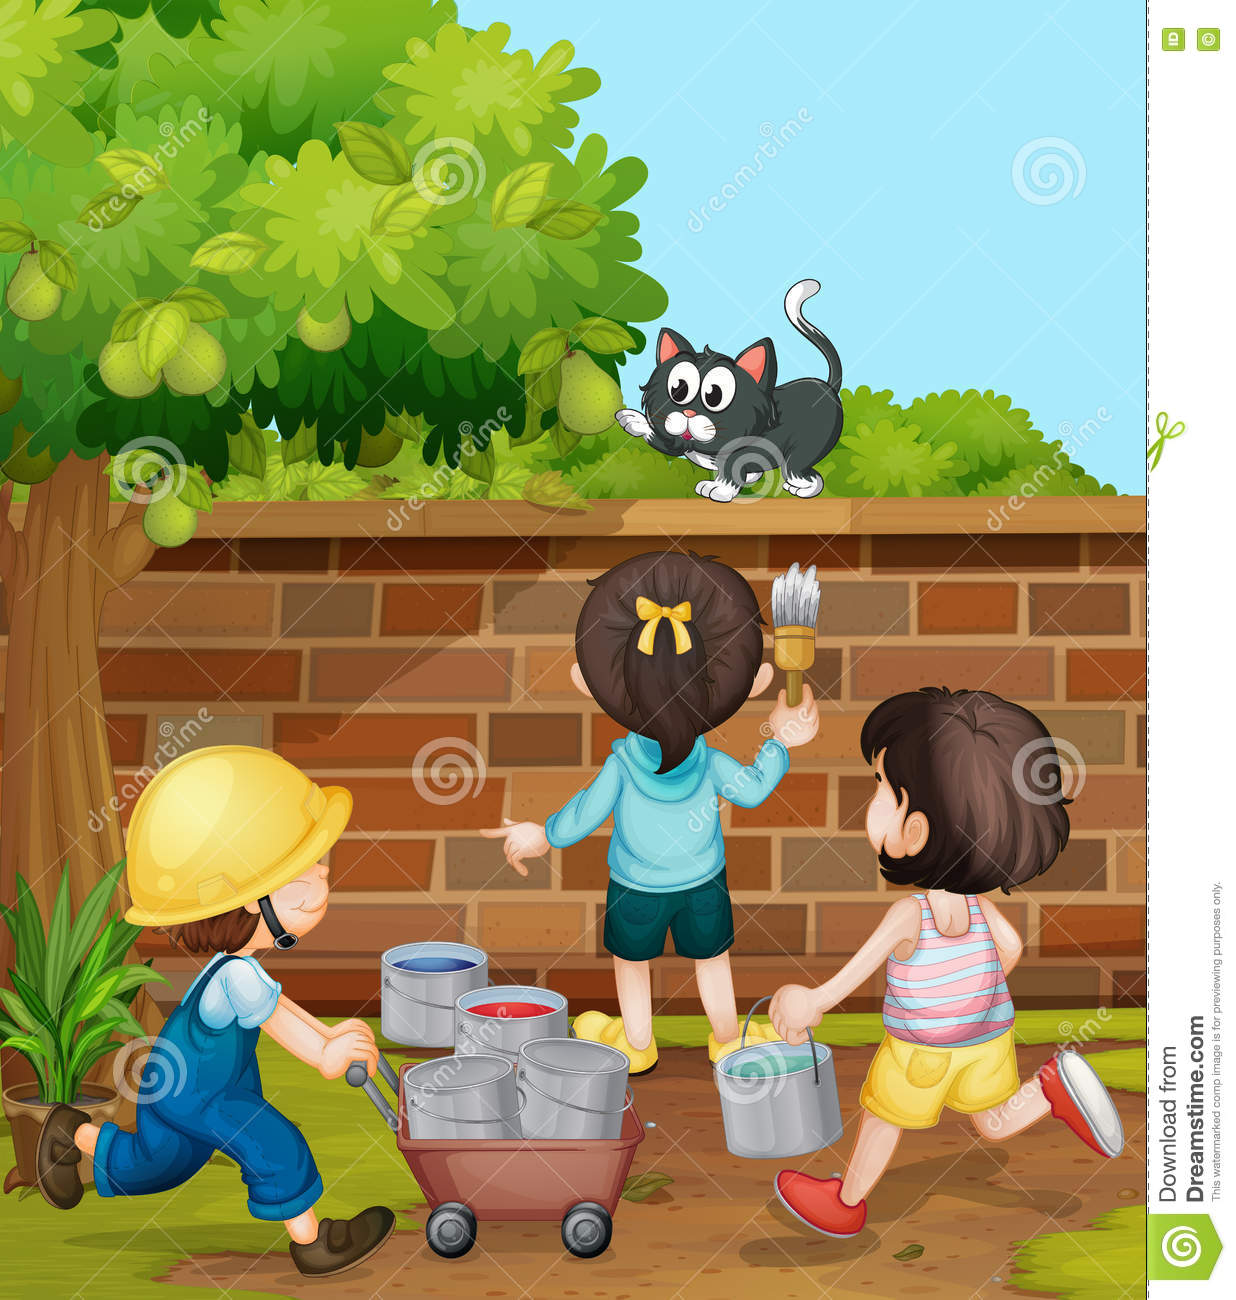 kids painting brick wall in the garden stock image - Pictures Of Kids Painting